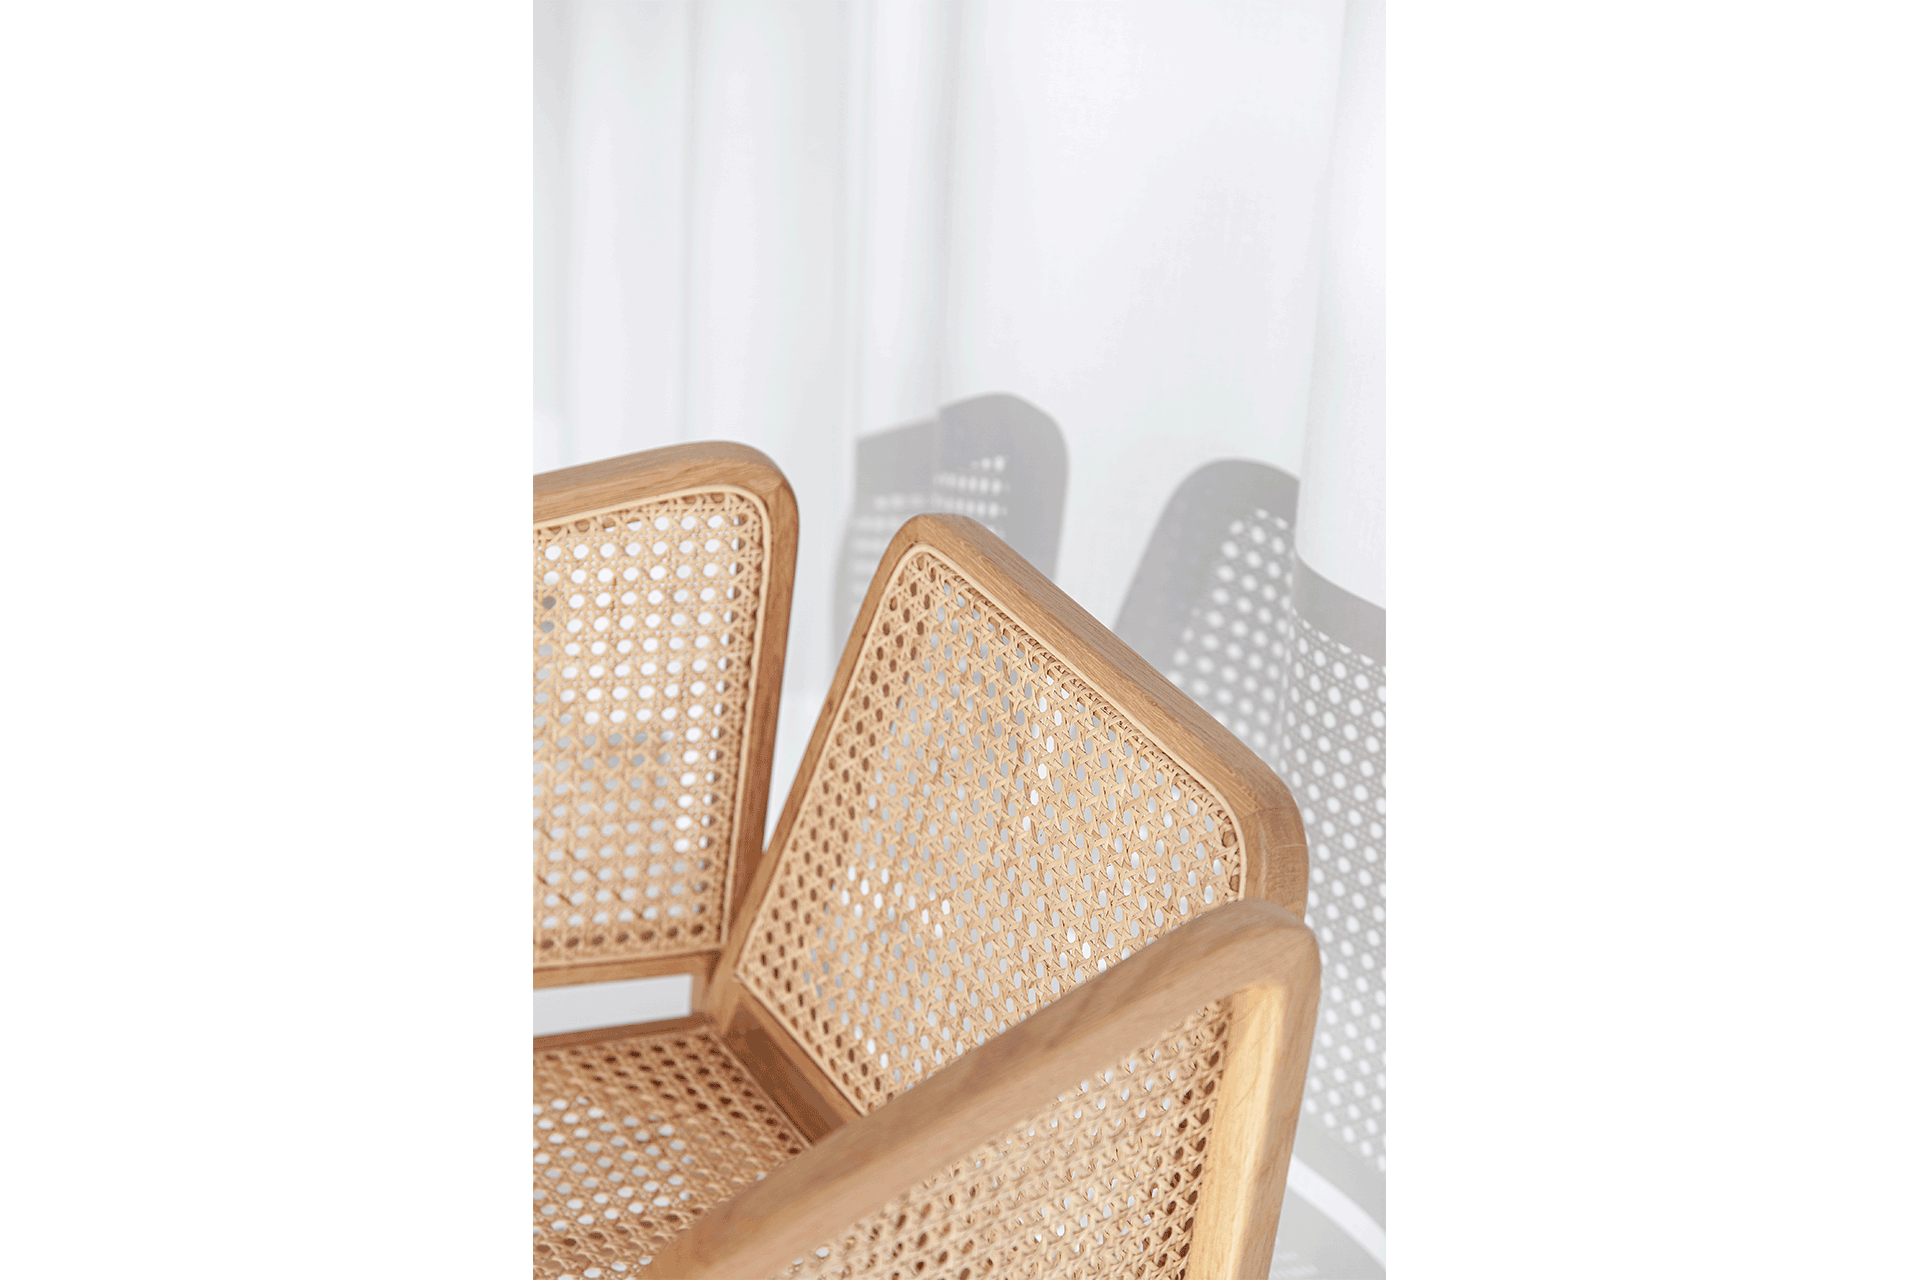 Bee Chair Upper View - DESIGN BY MIGUEL SOEIRO